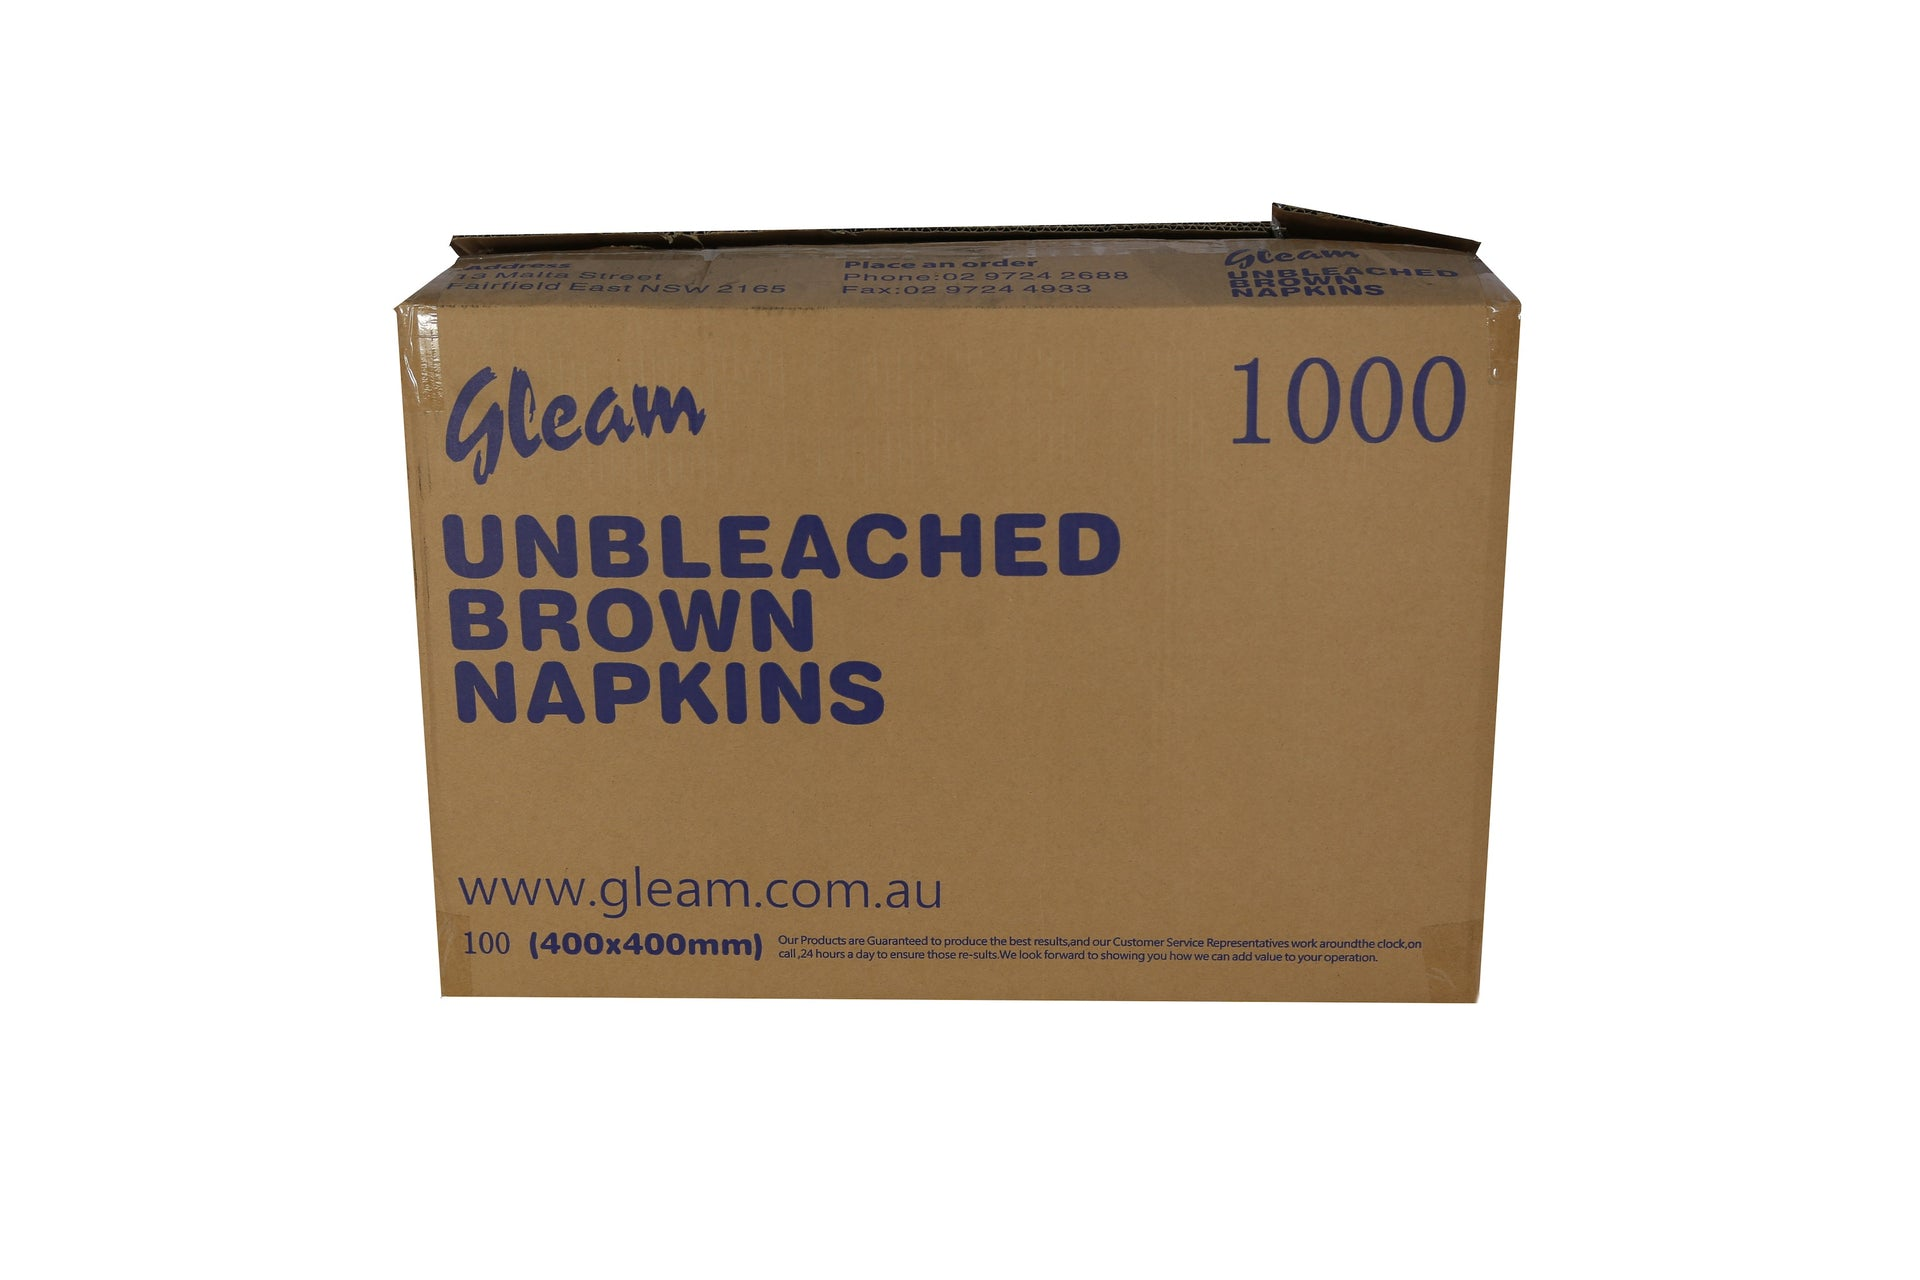 GLEAM UNBLEACHED PREMIUM FOLDED NAPKINS 400X400MM 1000 UNITS